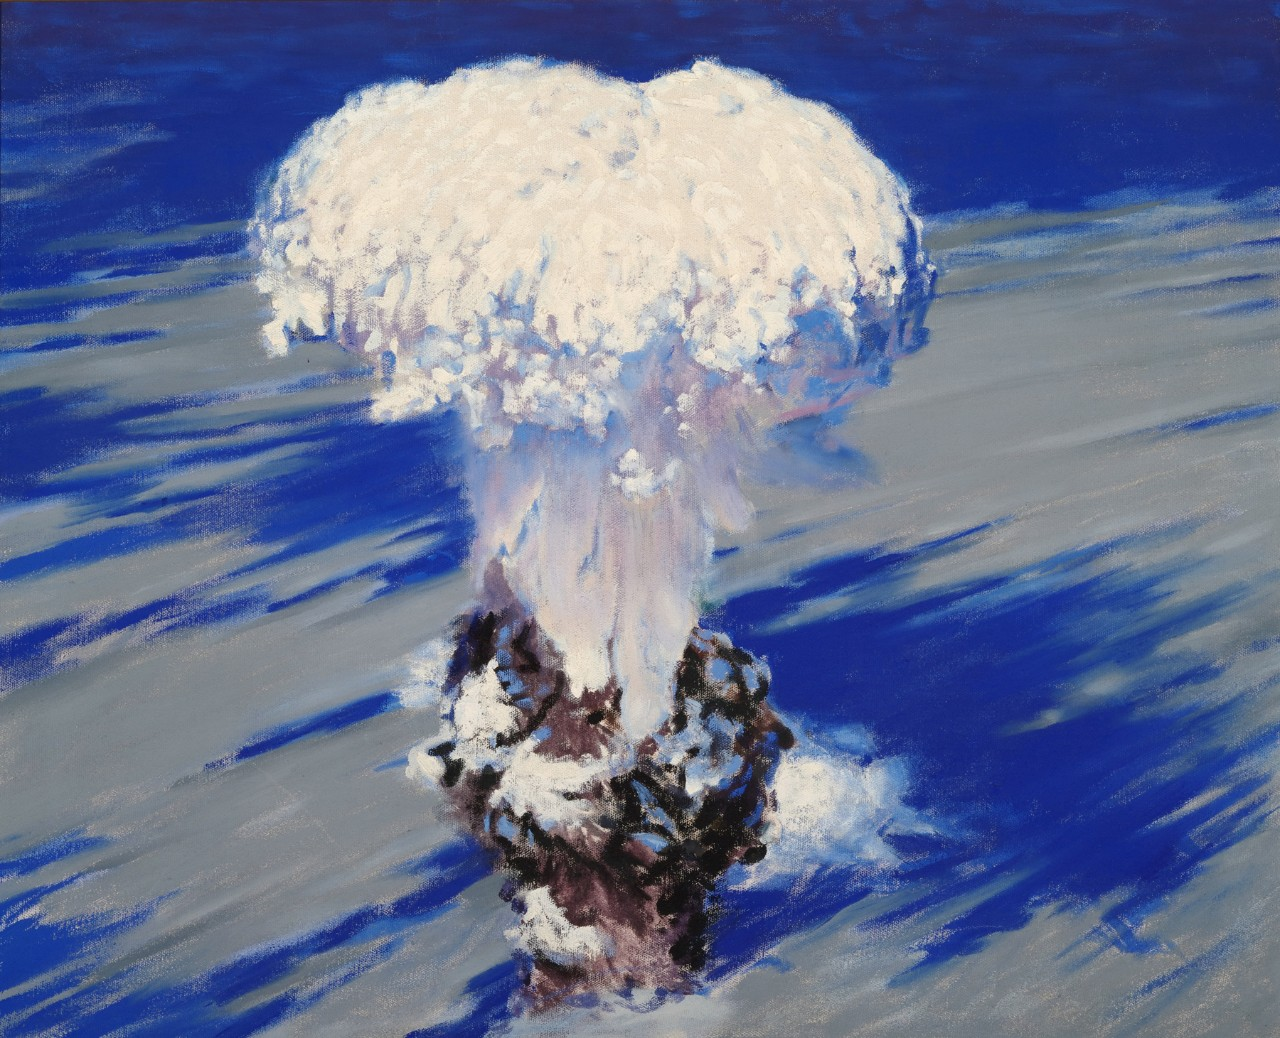 An atom bomb mushroom cloud seen from a top down perspective